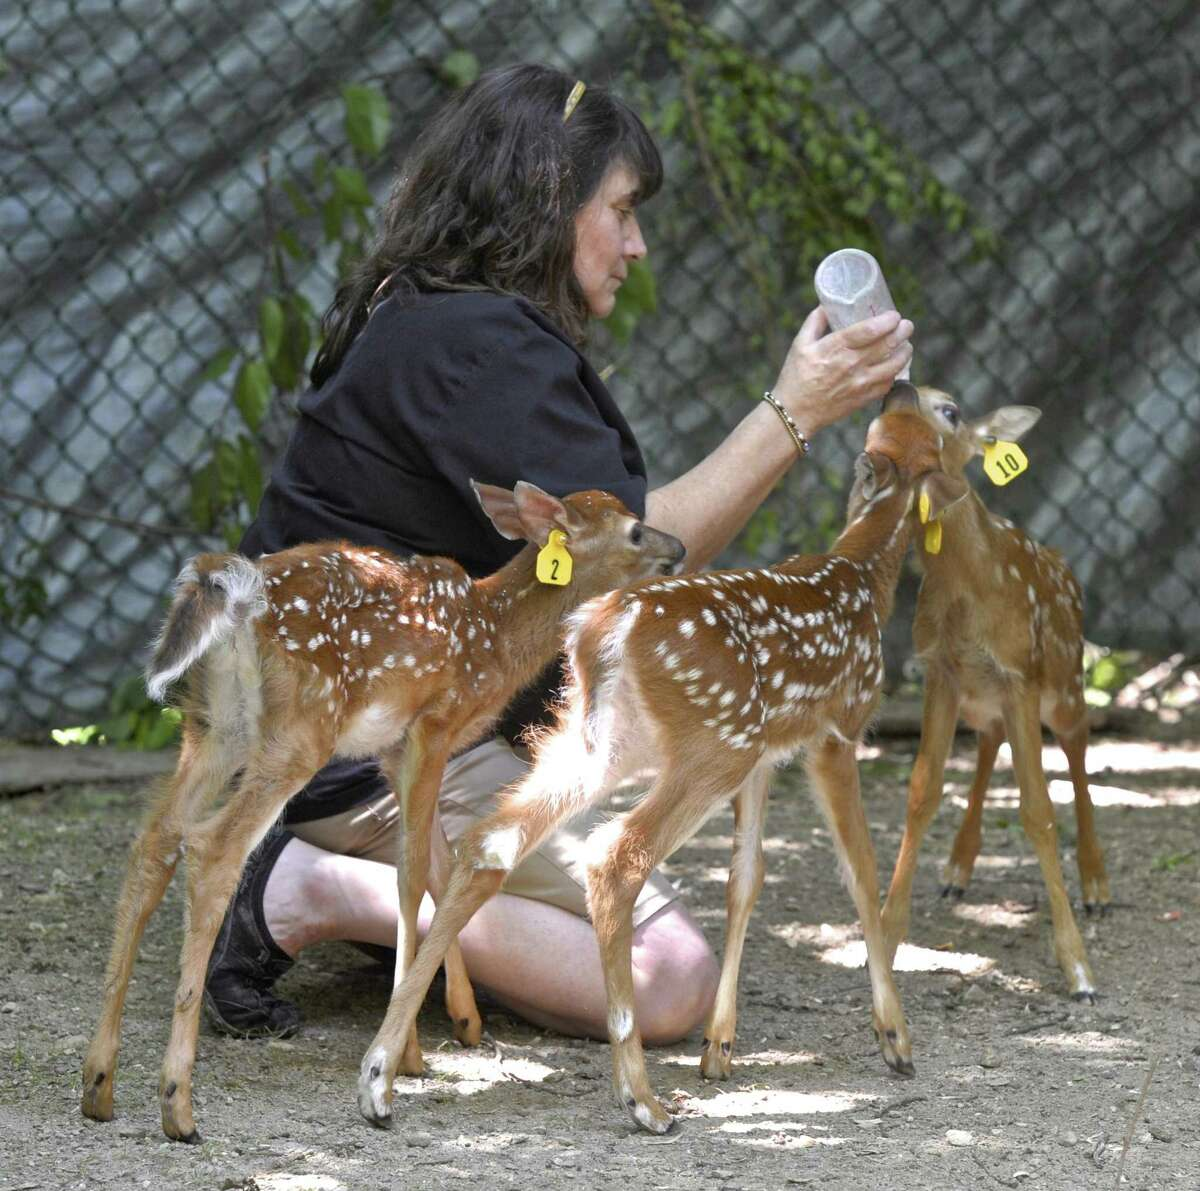 Debbie Corcione, of Sherman runs the non-profit Wildlife-line, which takes young animal and rehabilitates them to be released back into the wild.